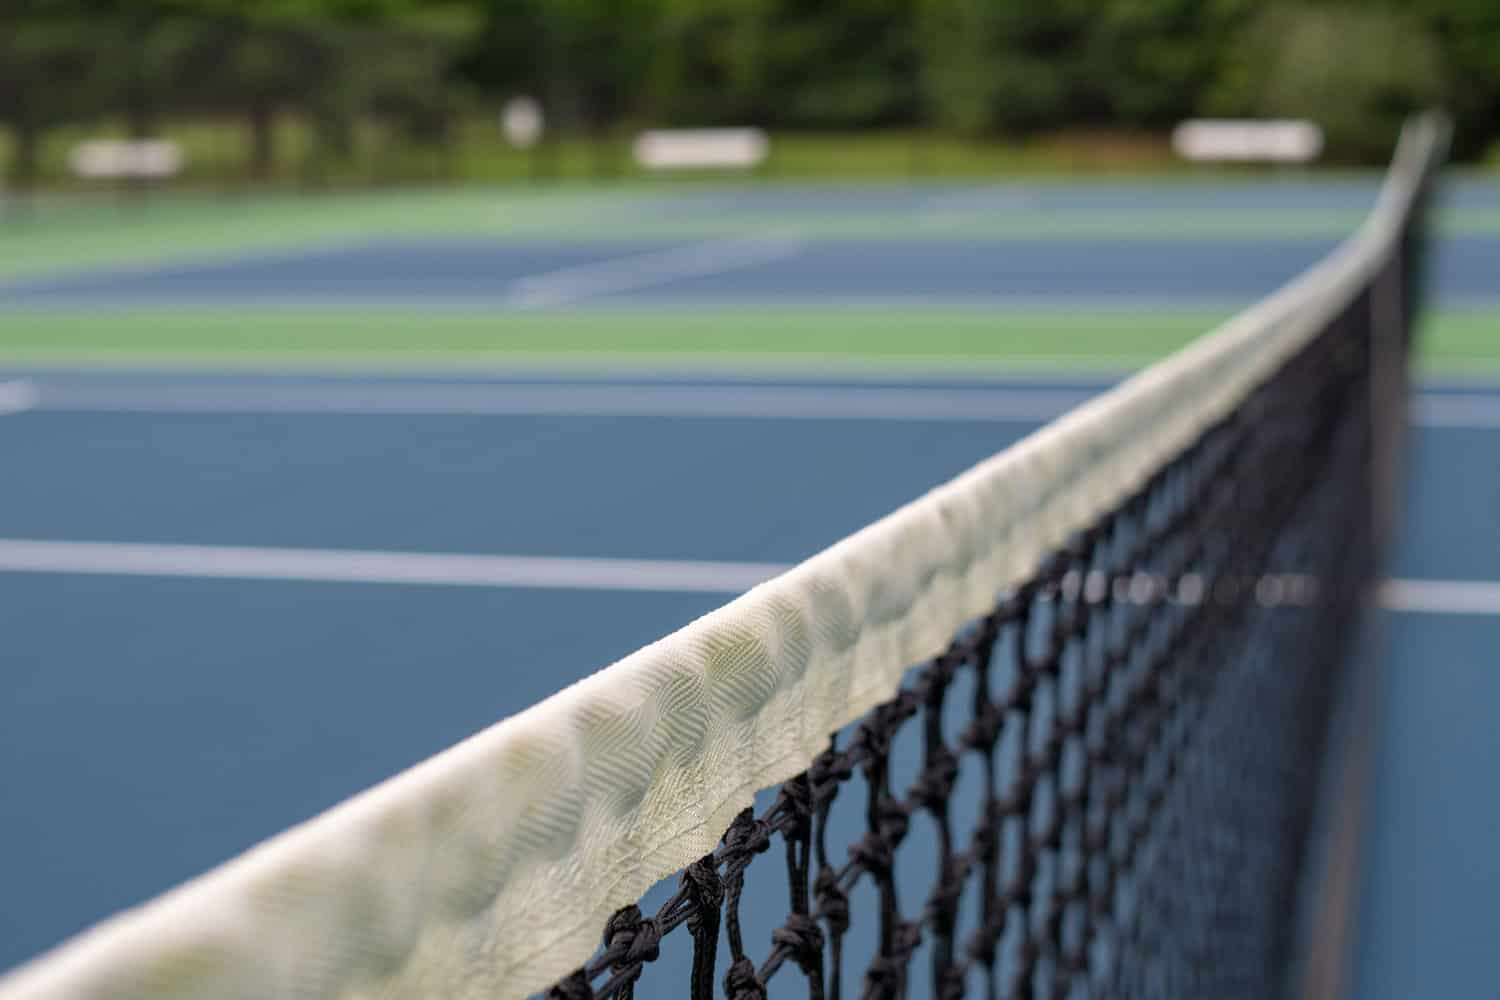 A close up of tennis court net with net in focus